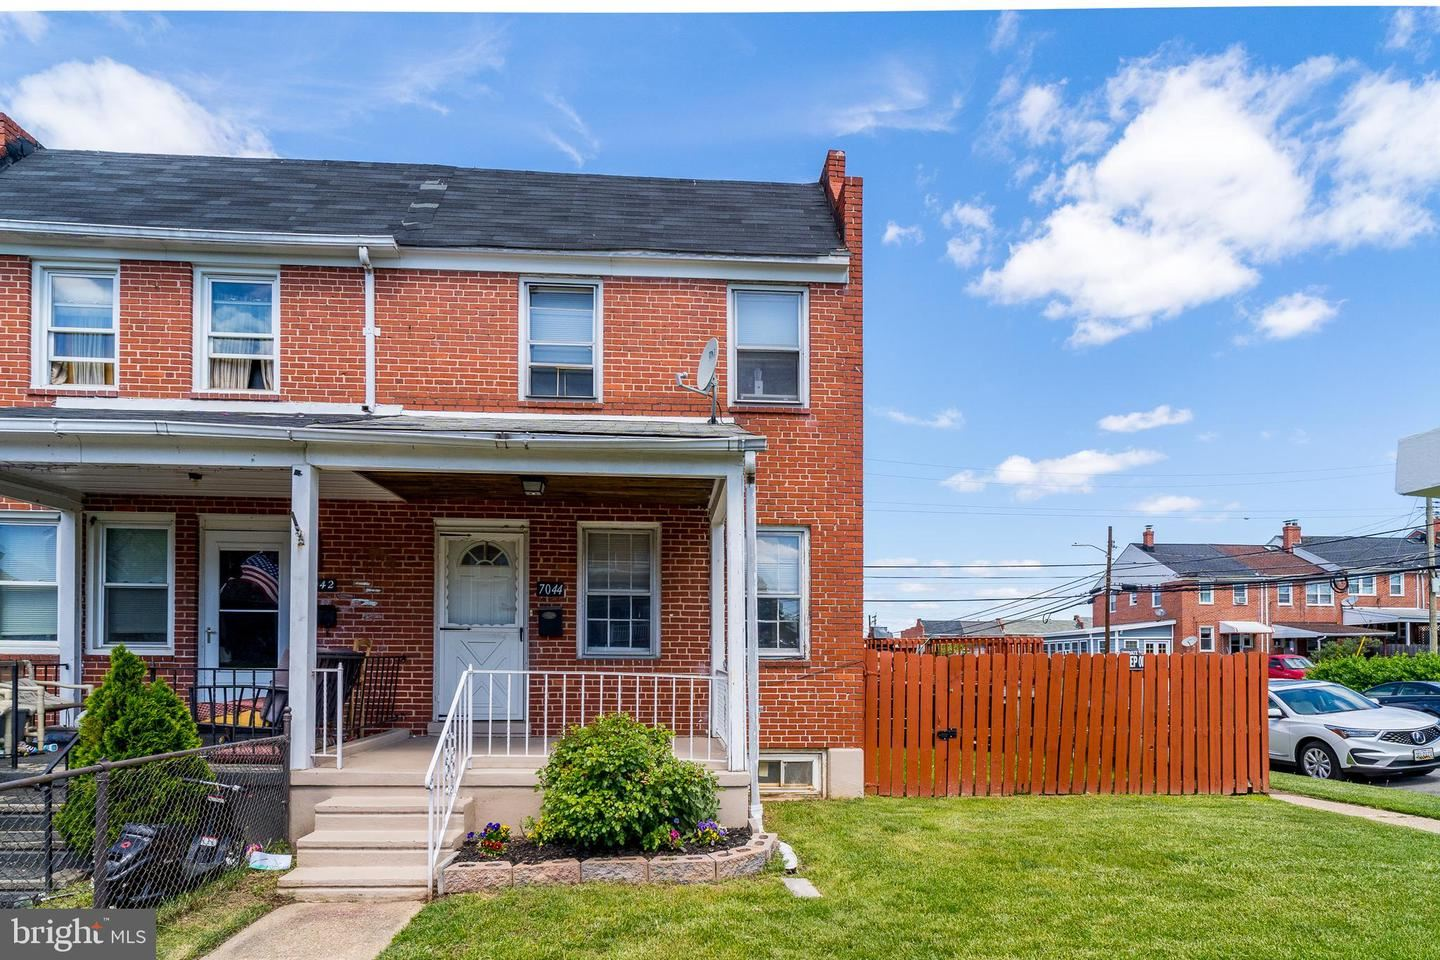 7044 CONLEY ST, Baltimore, MD 21224 - MLS#: MDBC525628